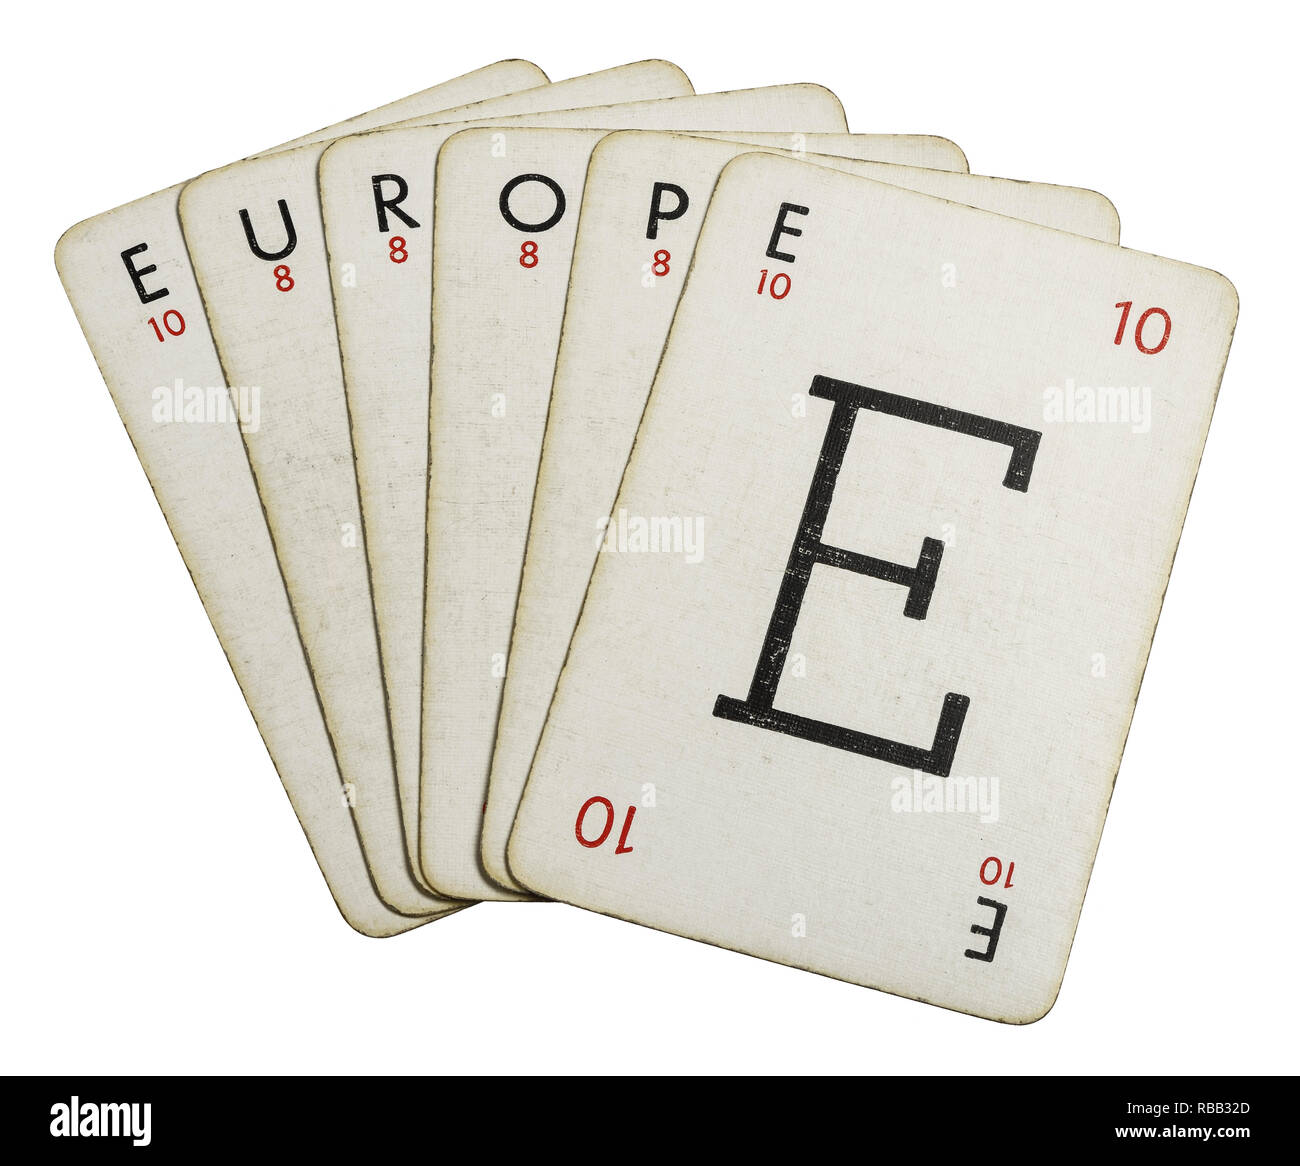 Lexicon playing cards spelling out the word Europe - Stock Image